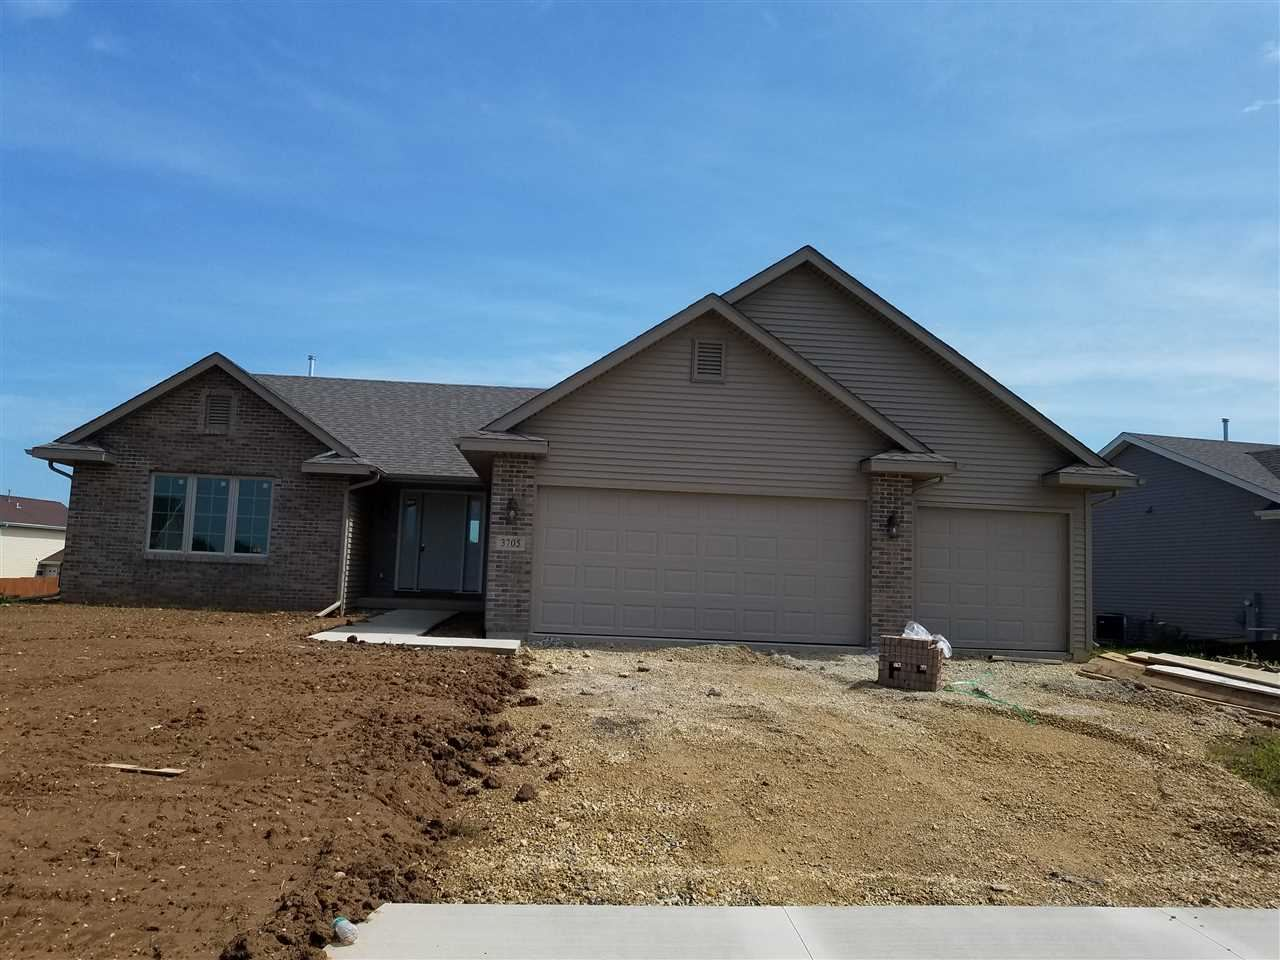 3705 EAGLE RIDGE DR, Beloit, WI 53511 - #: 1883504